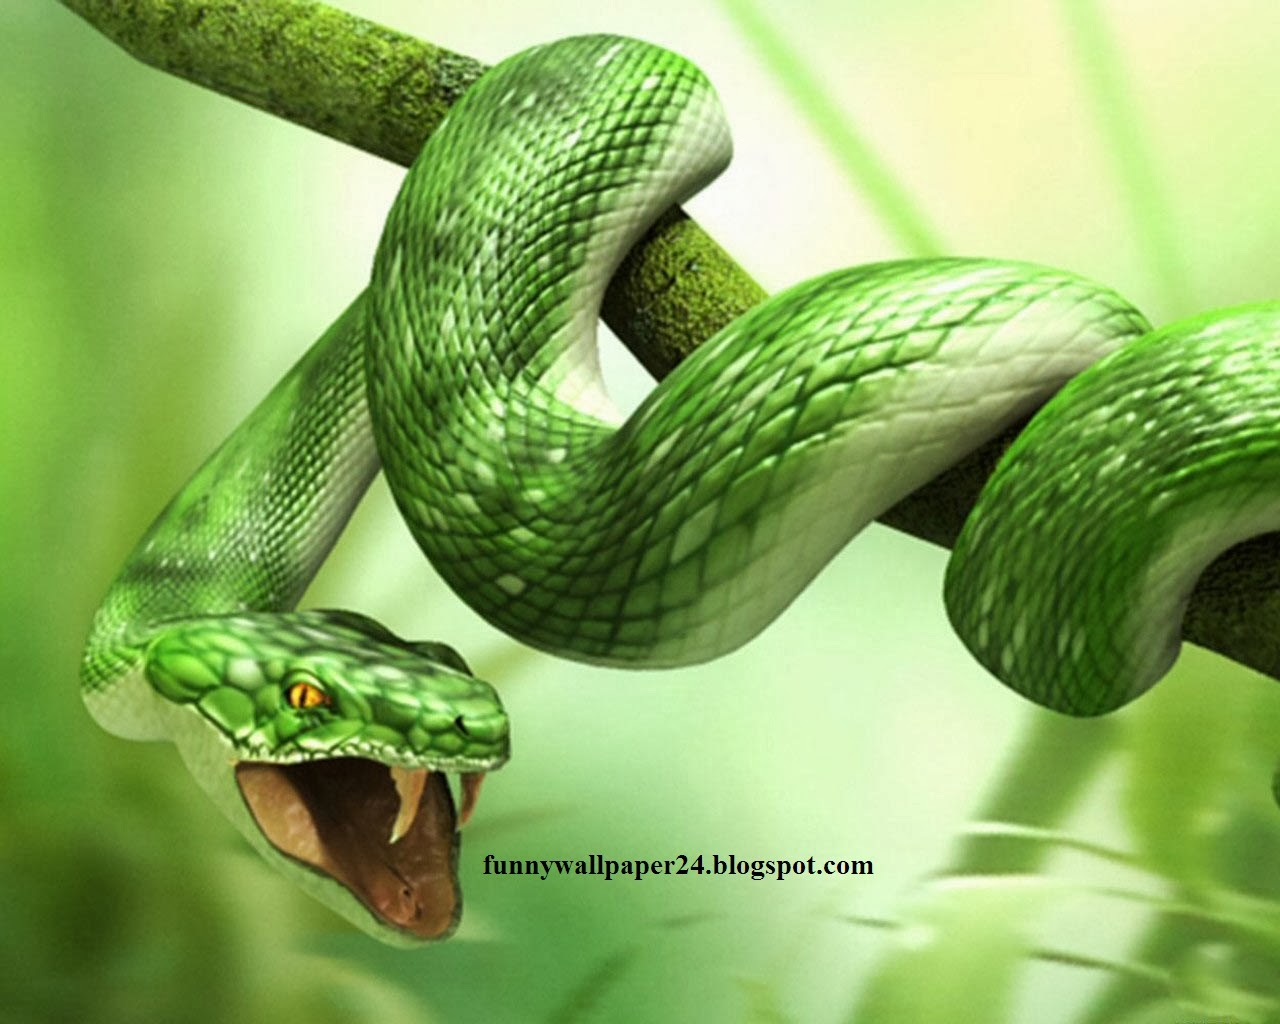 Free Live Animal Wallpaper - Hunting Snake By Judith Wright - HD Wallpaper